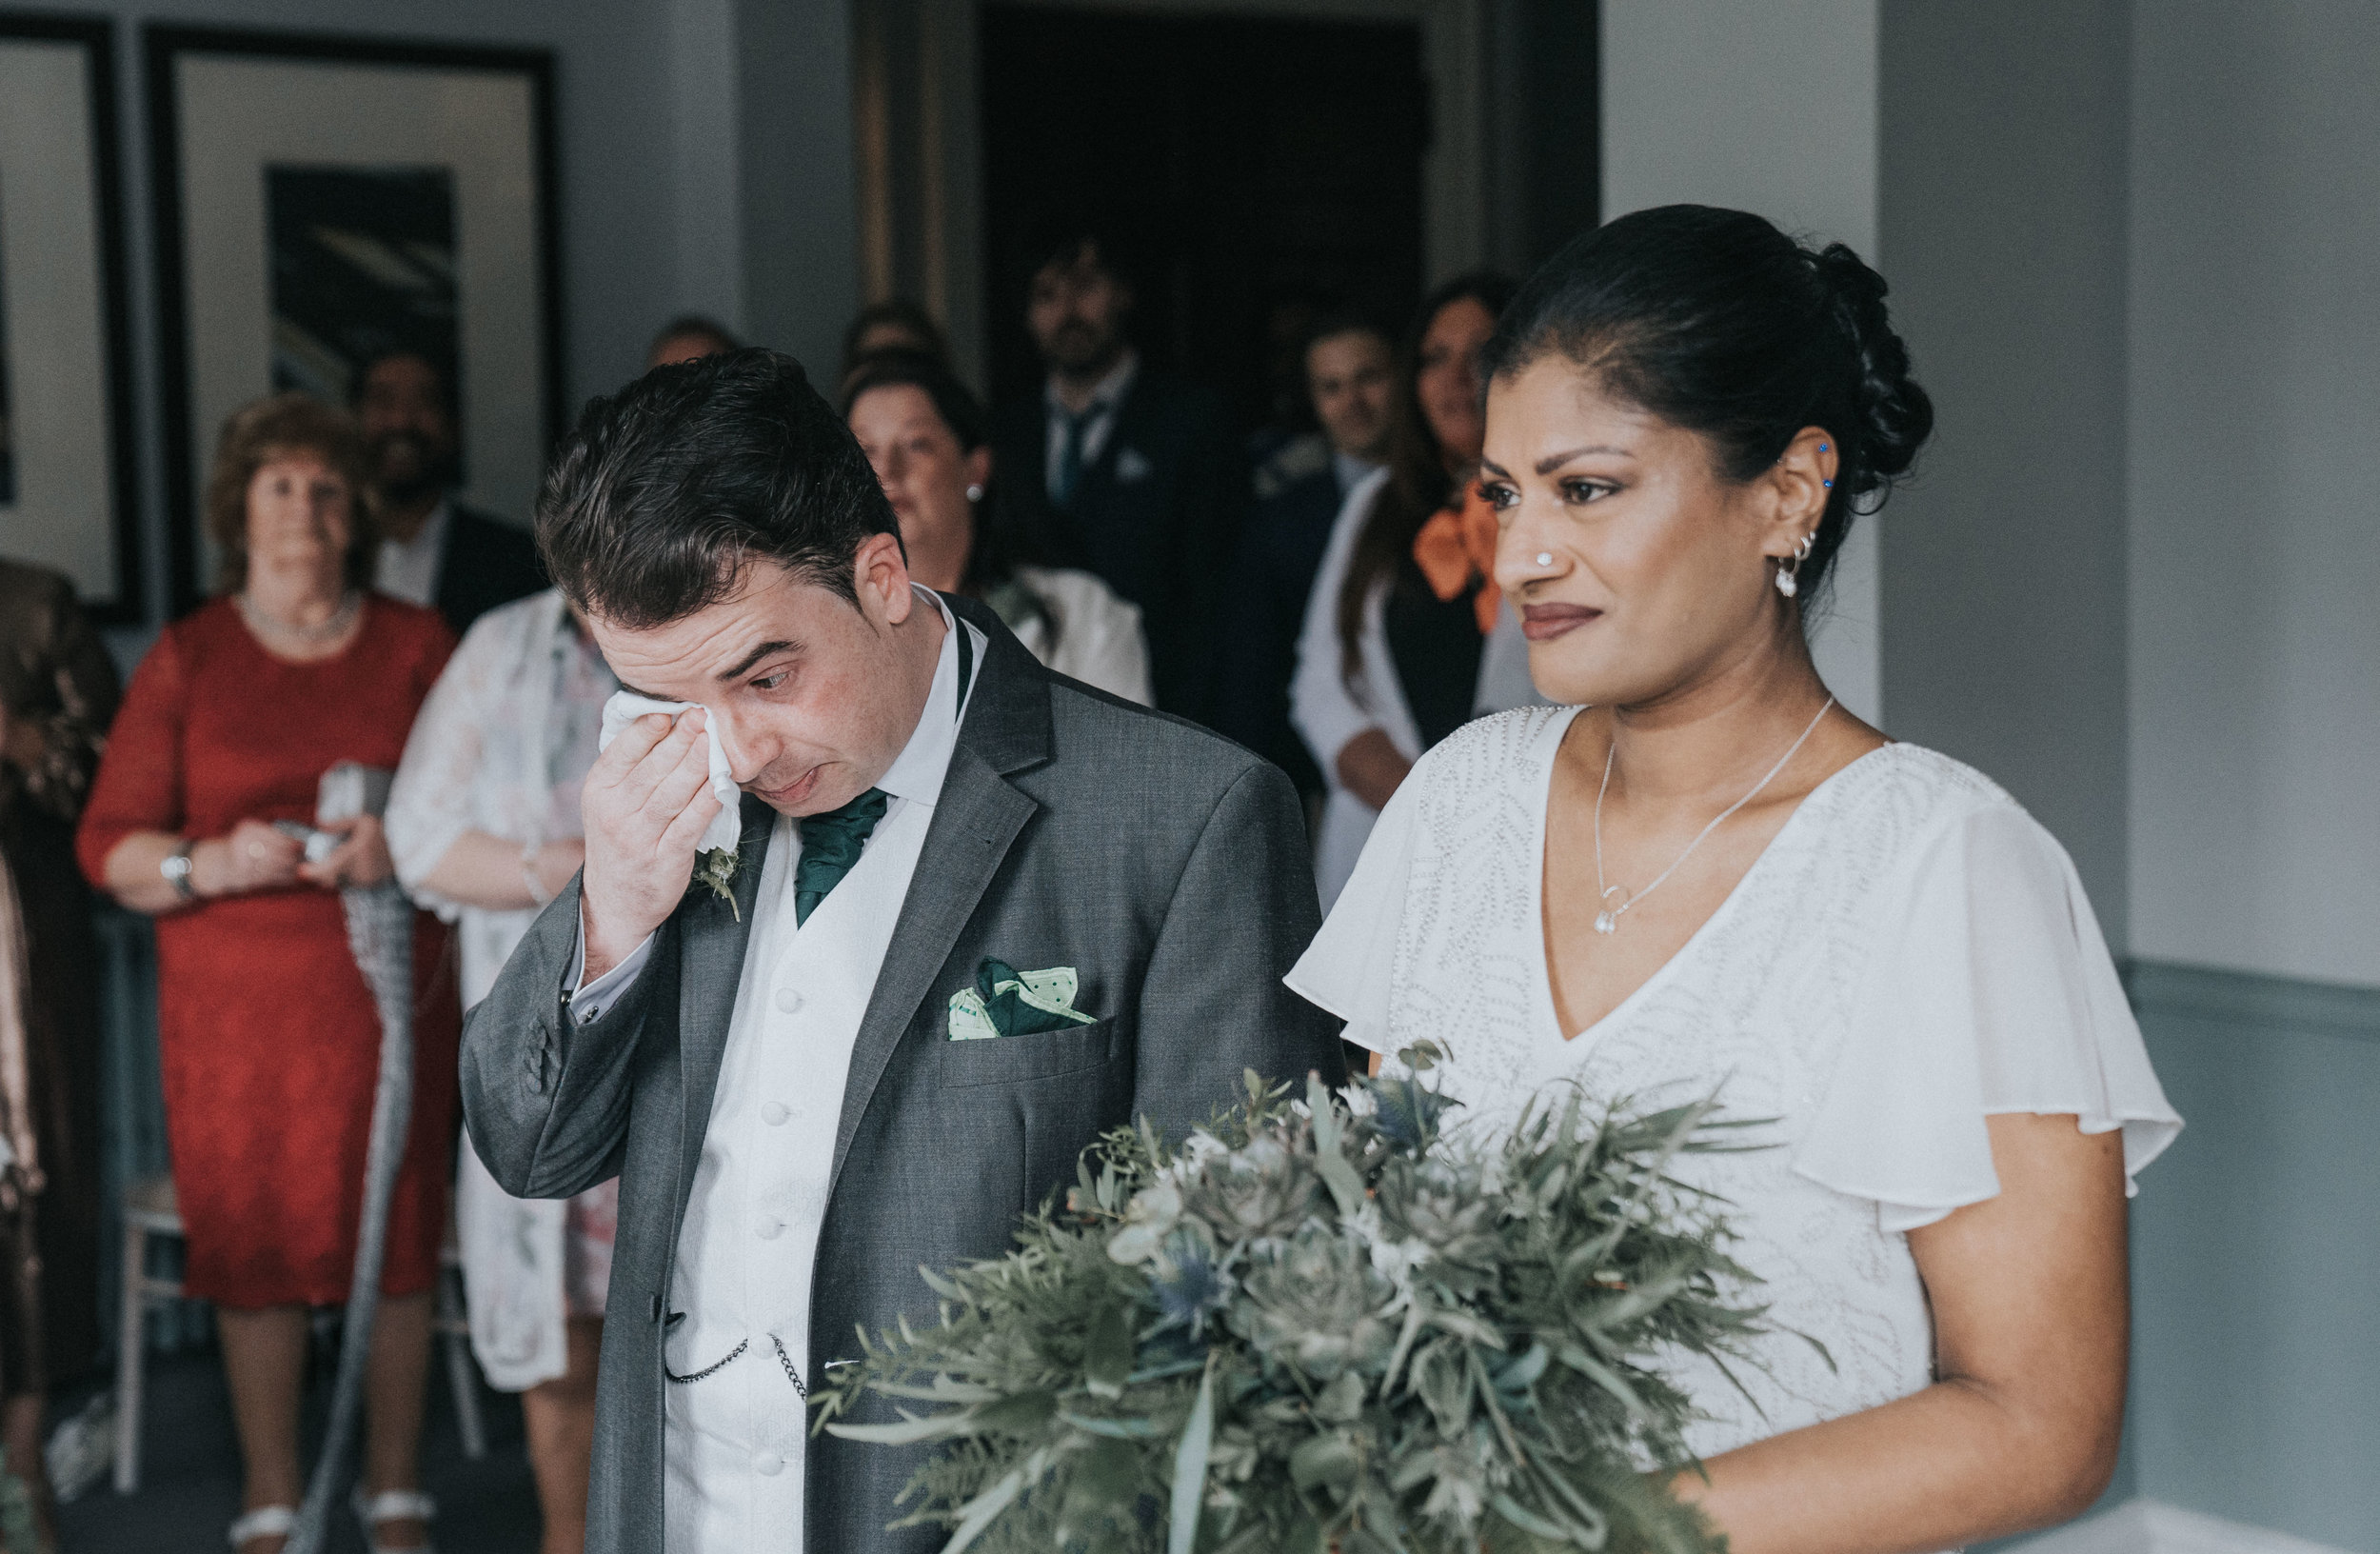 gorse-hill-hotel-wedding-photography-videography-surrey-london-24